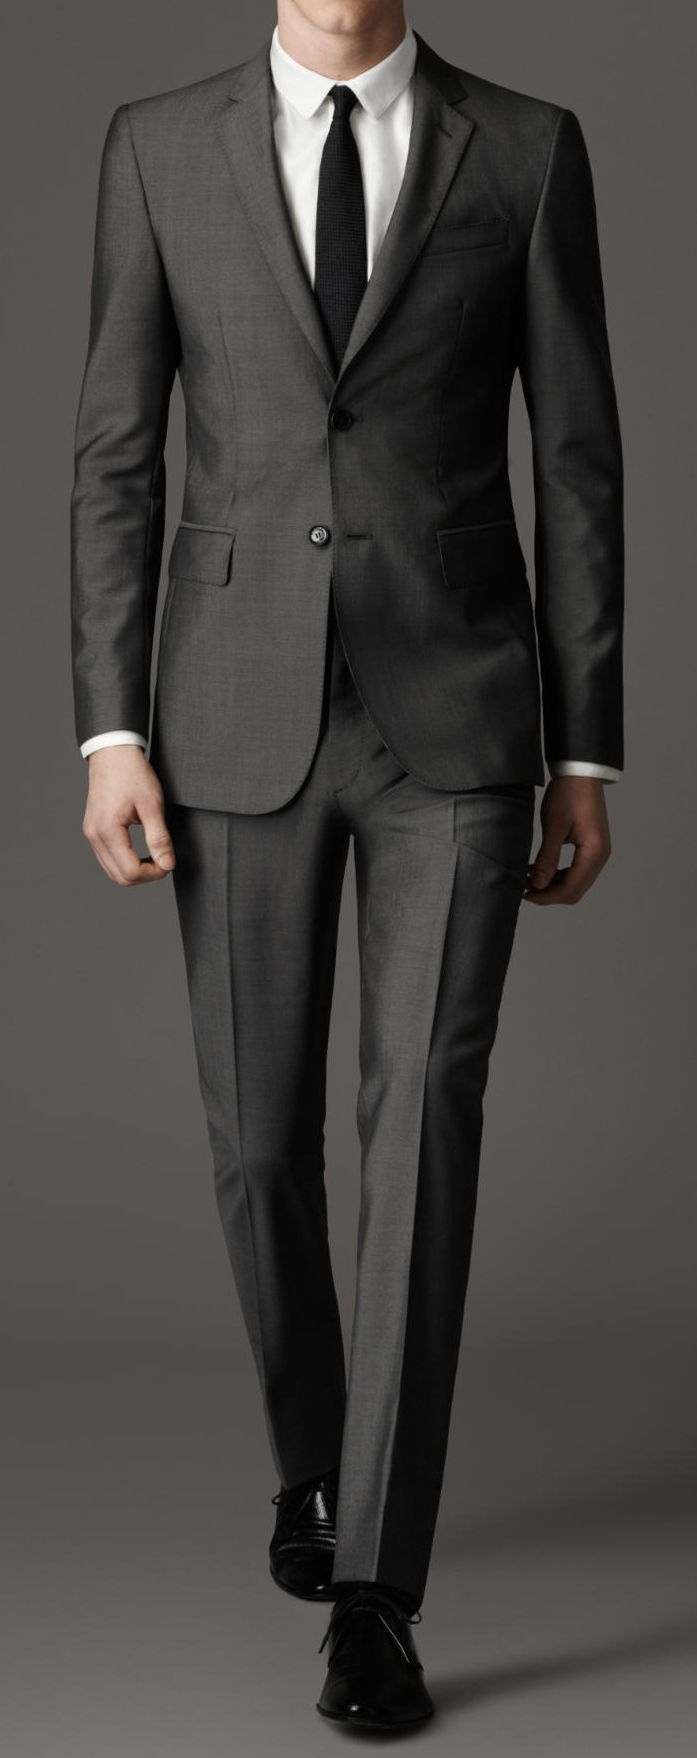 $1295 / Burberry / 38115681: Modern Fit Wool Mohair Suit